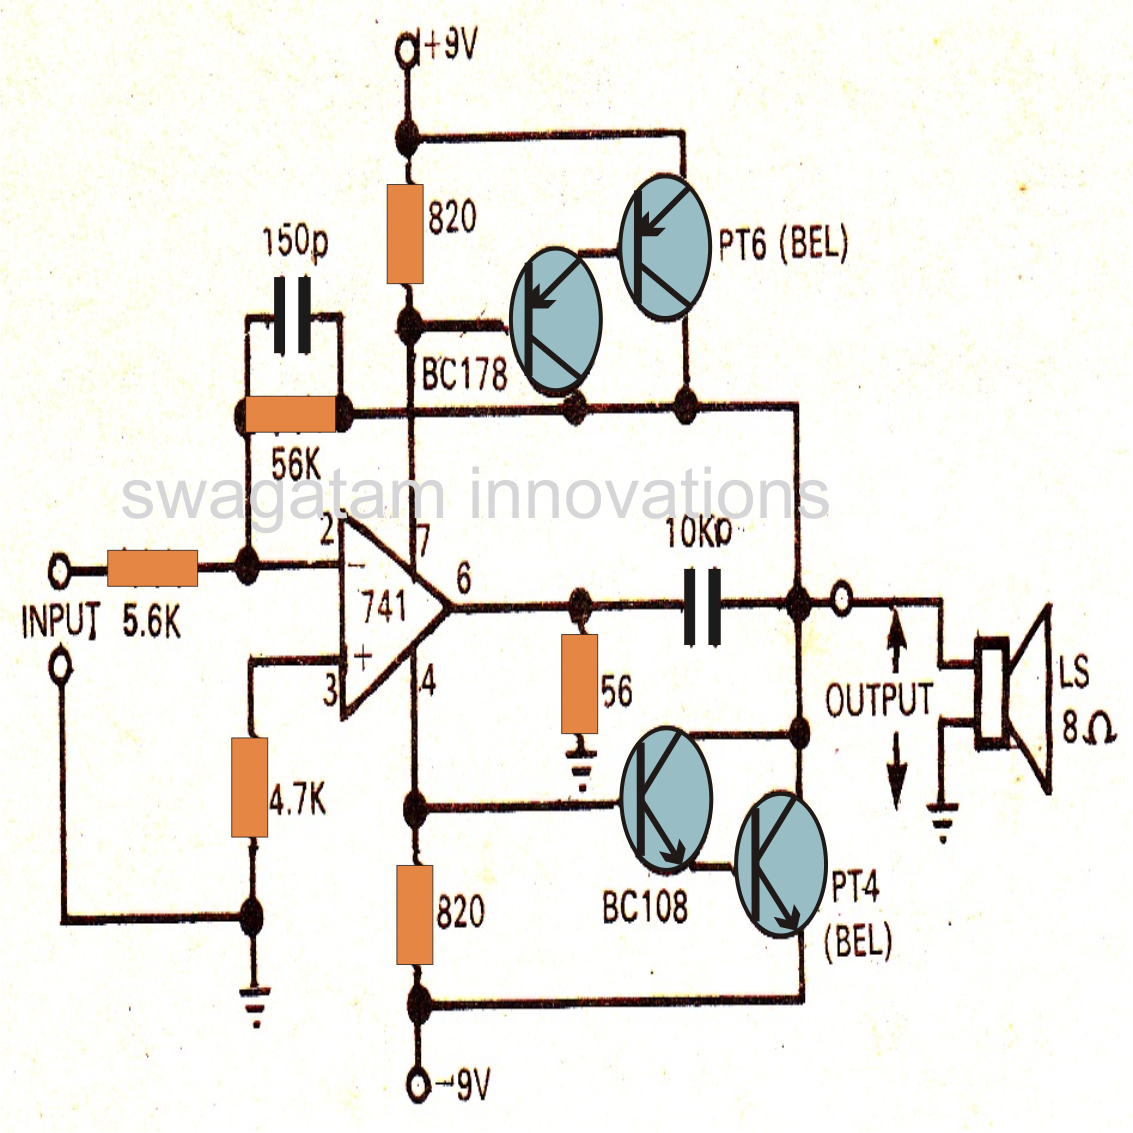 How To Make Ic 741 Application Circuits moreover Anti Theft Alarm For Bikes By Vinod And Venu moreover Additional Annunciation System For 3311kv Substations as well Lm339 Datasheet likewise Temperature Sensing Switch Using Lm35   Lm358. on voltage comparator circuit diagram